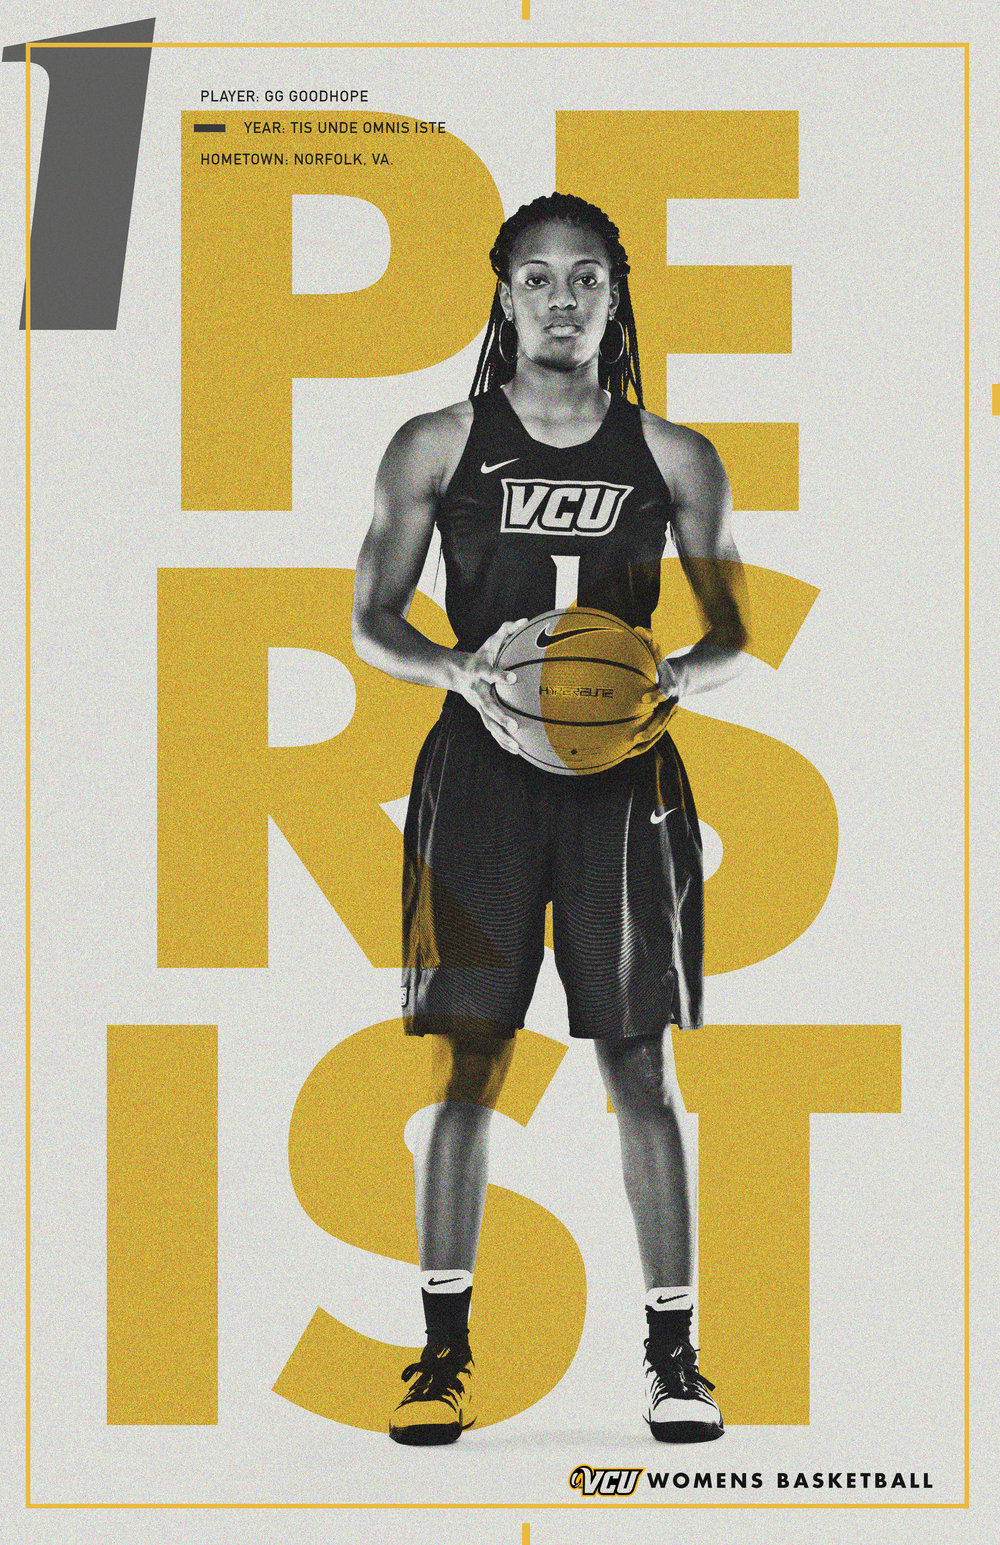 vcubball_players_001.jpg